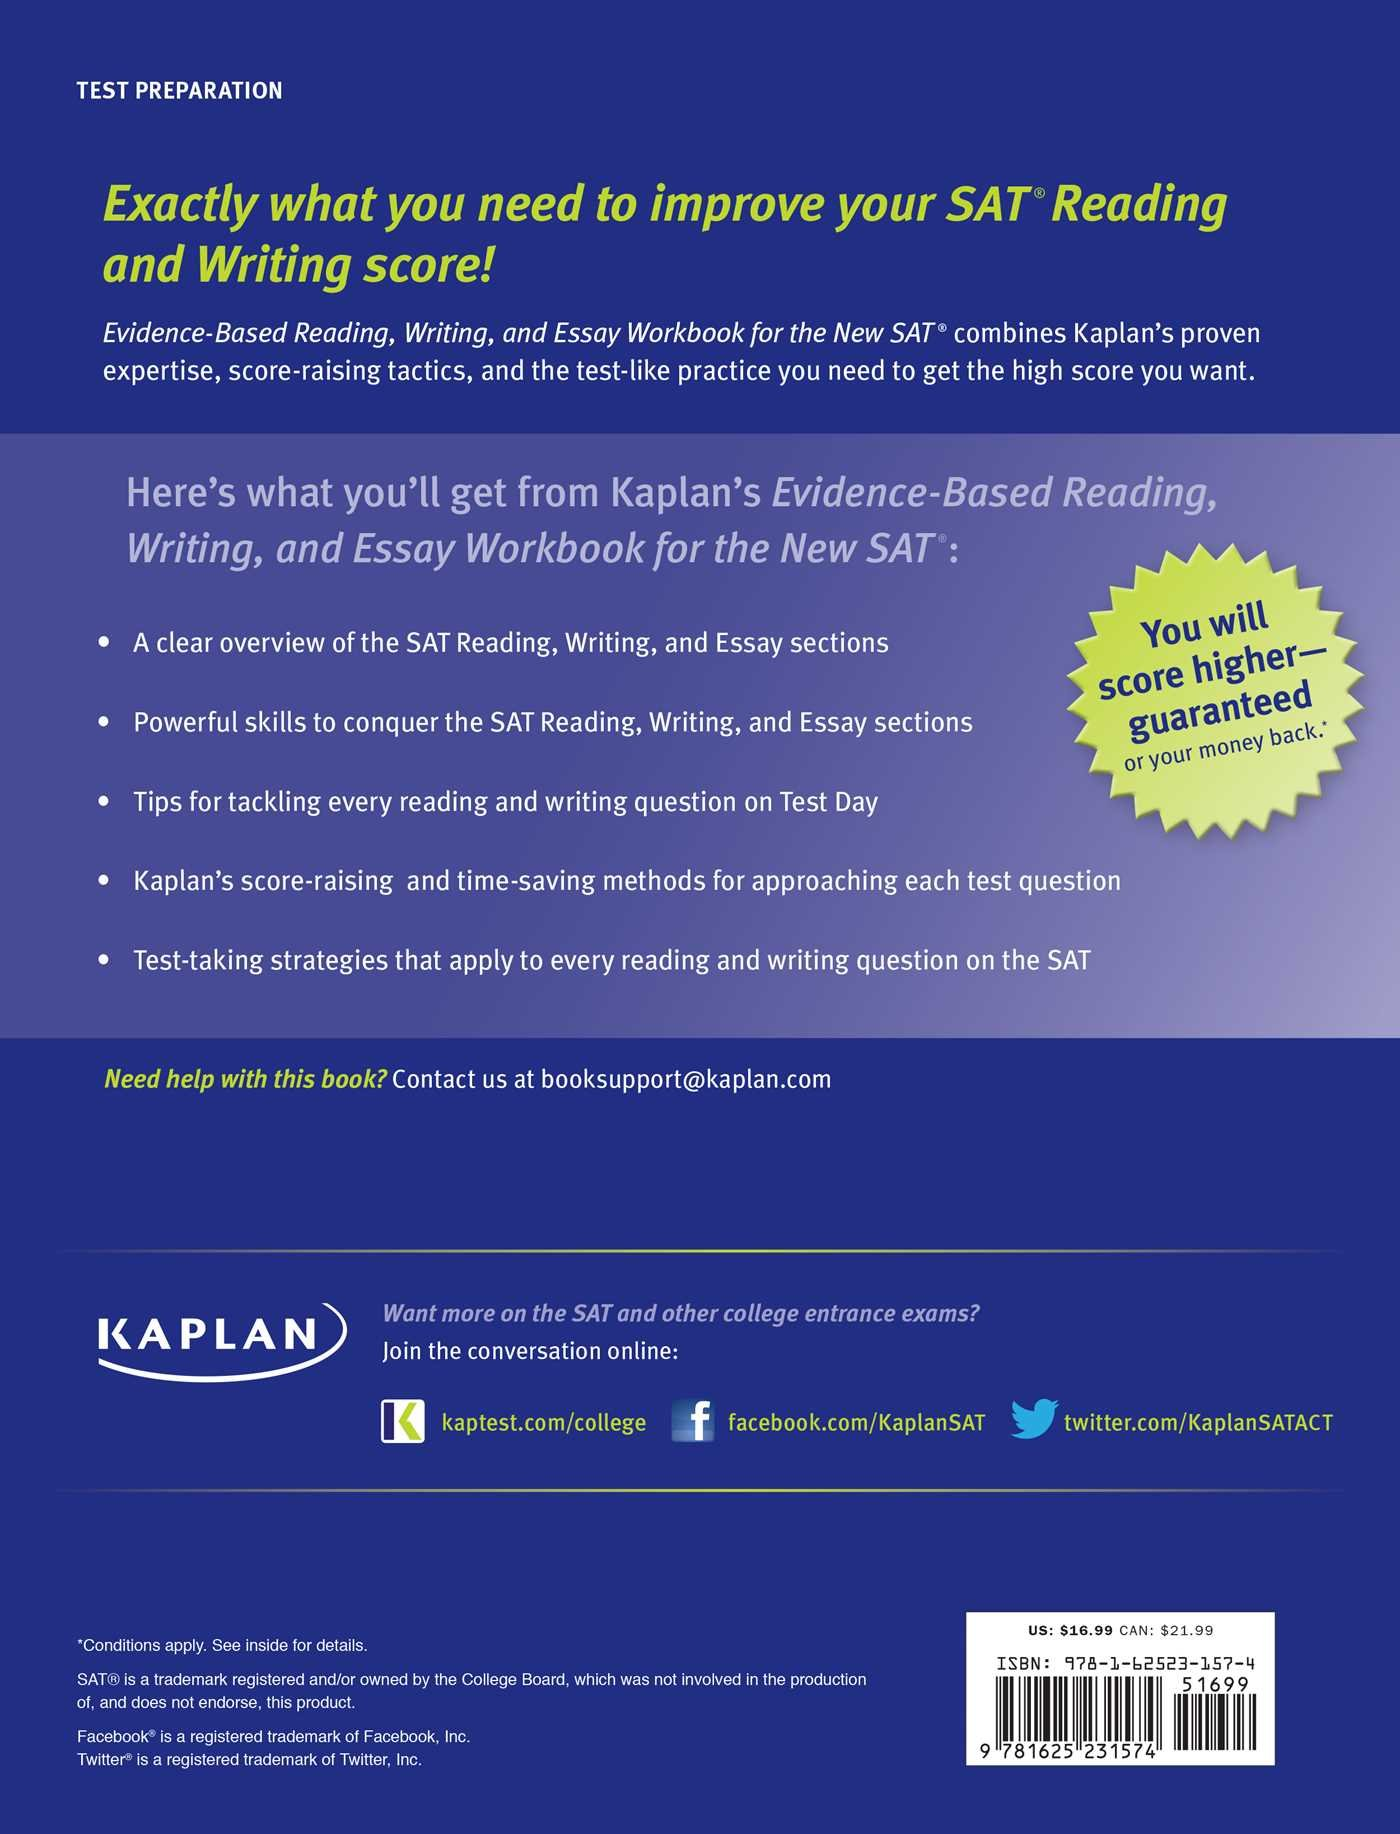 buy kaplan evidence based reading writing and essay workbook for  buy kaplan evidence based reading writing and essay workbook for the new sat kaplan test prep book online at low prices in kaplan evidence based